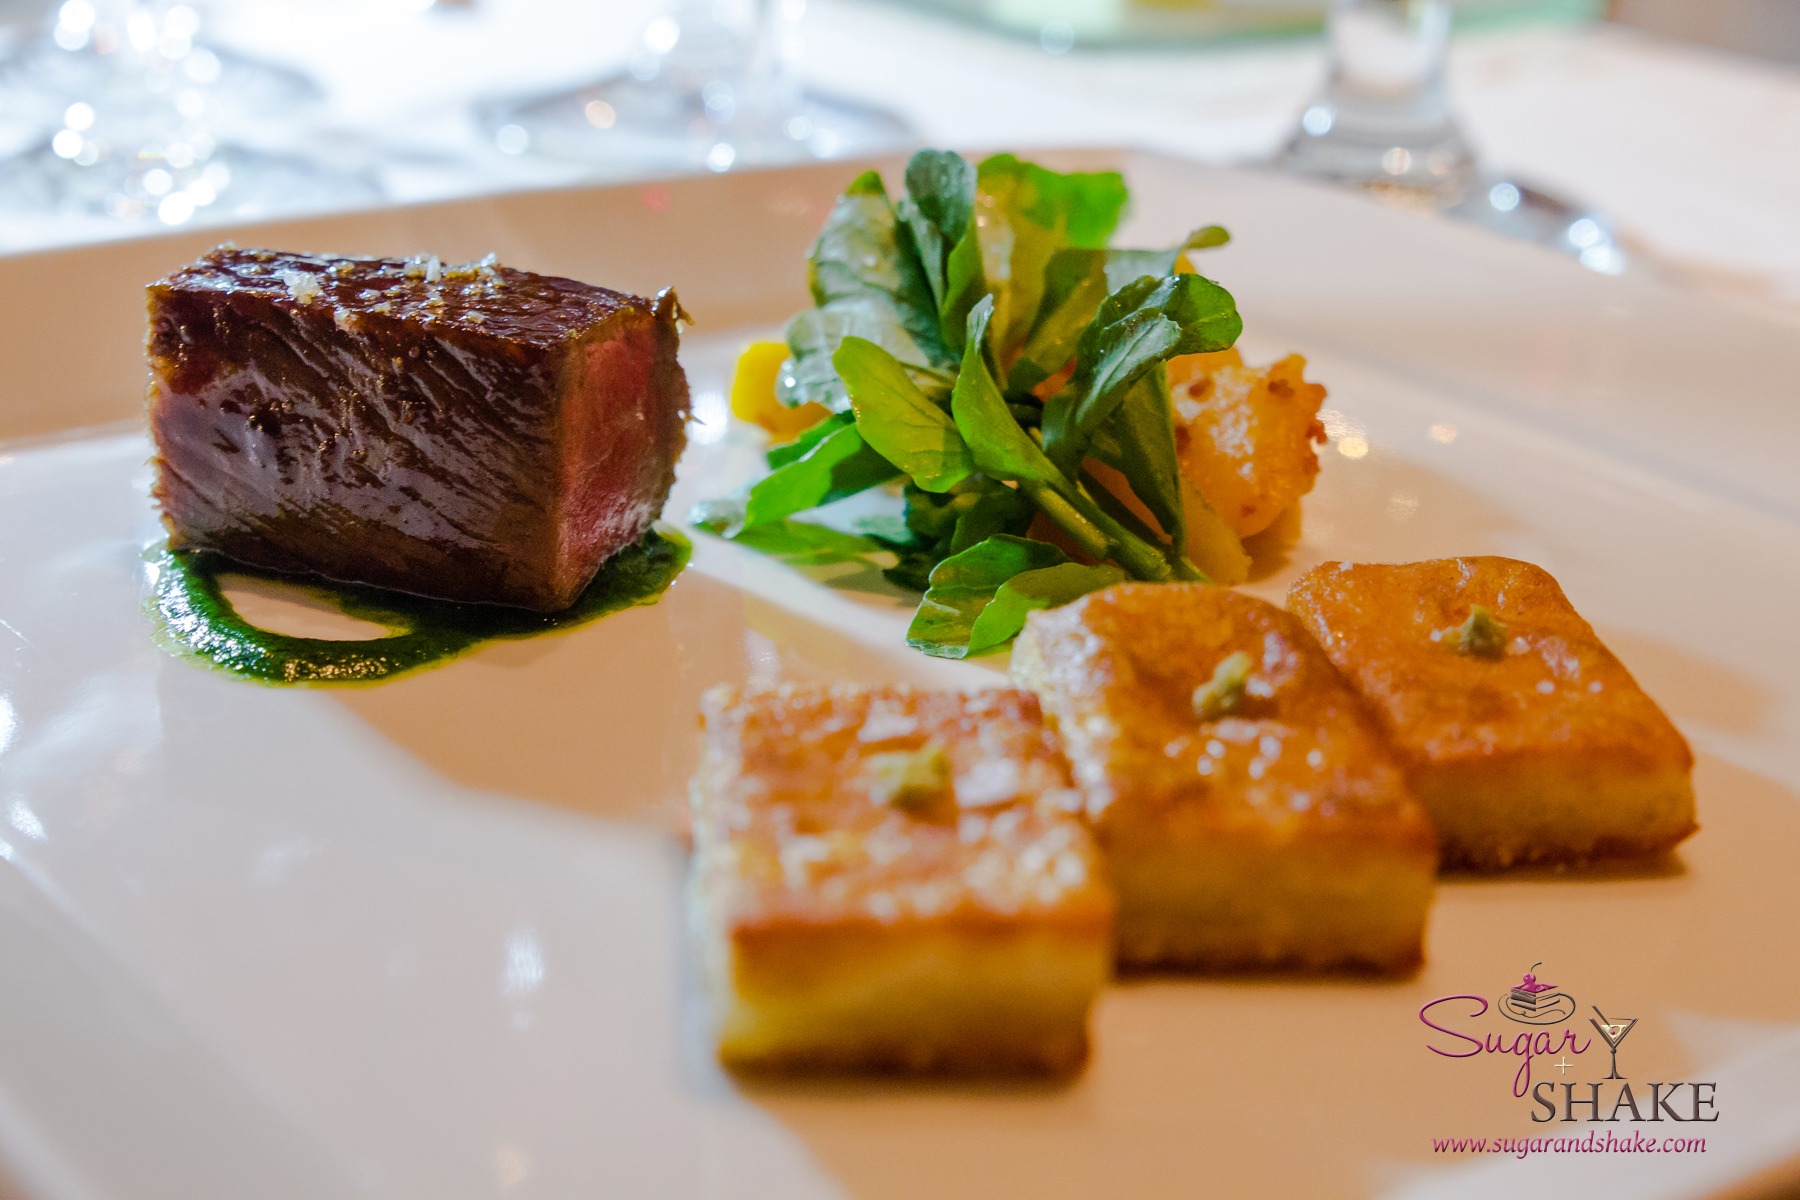 Chef Mavro Fall 2014 Menu Tasting. Wagyu pavé, pomegranate-teriyaki glaze, Sumida Farm watercress, sautéed kabocha, potato kochi with yuzu kosho accent. © 2014 Sugar + Shake